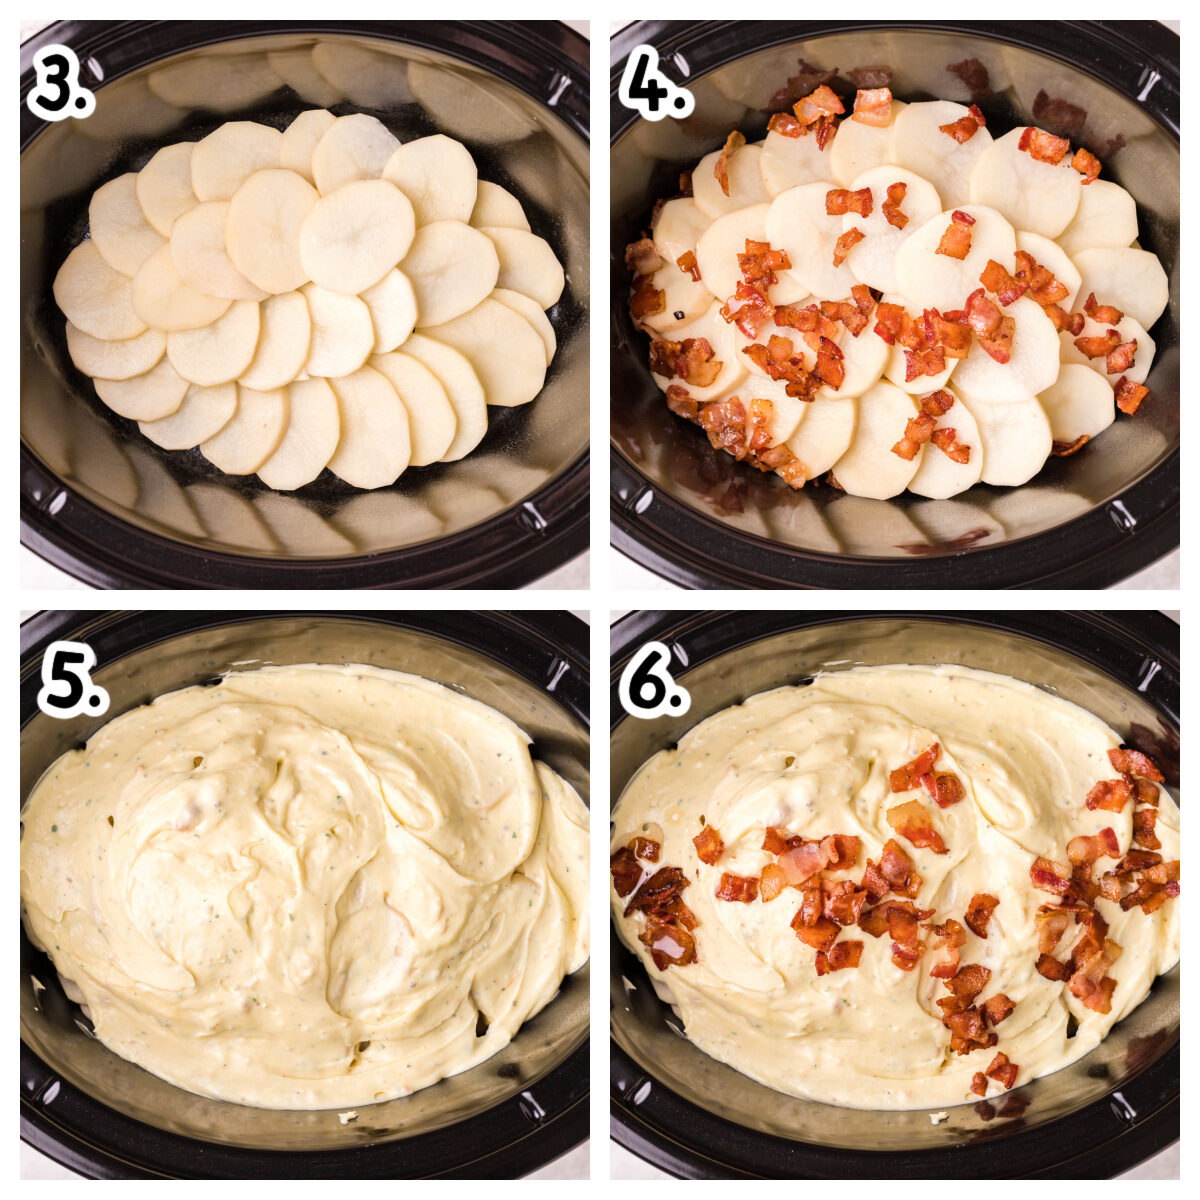 4 image collage about how to add ingredients to slow cooker for scalloped potatoes